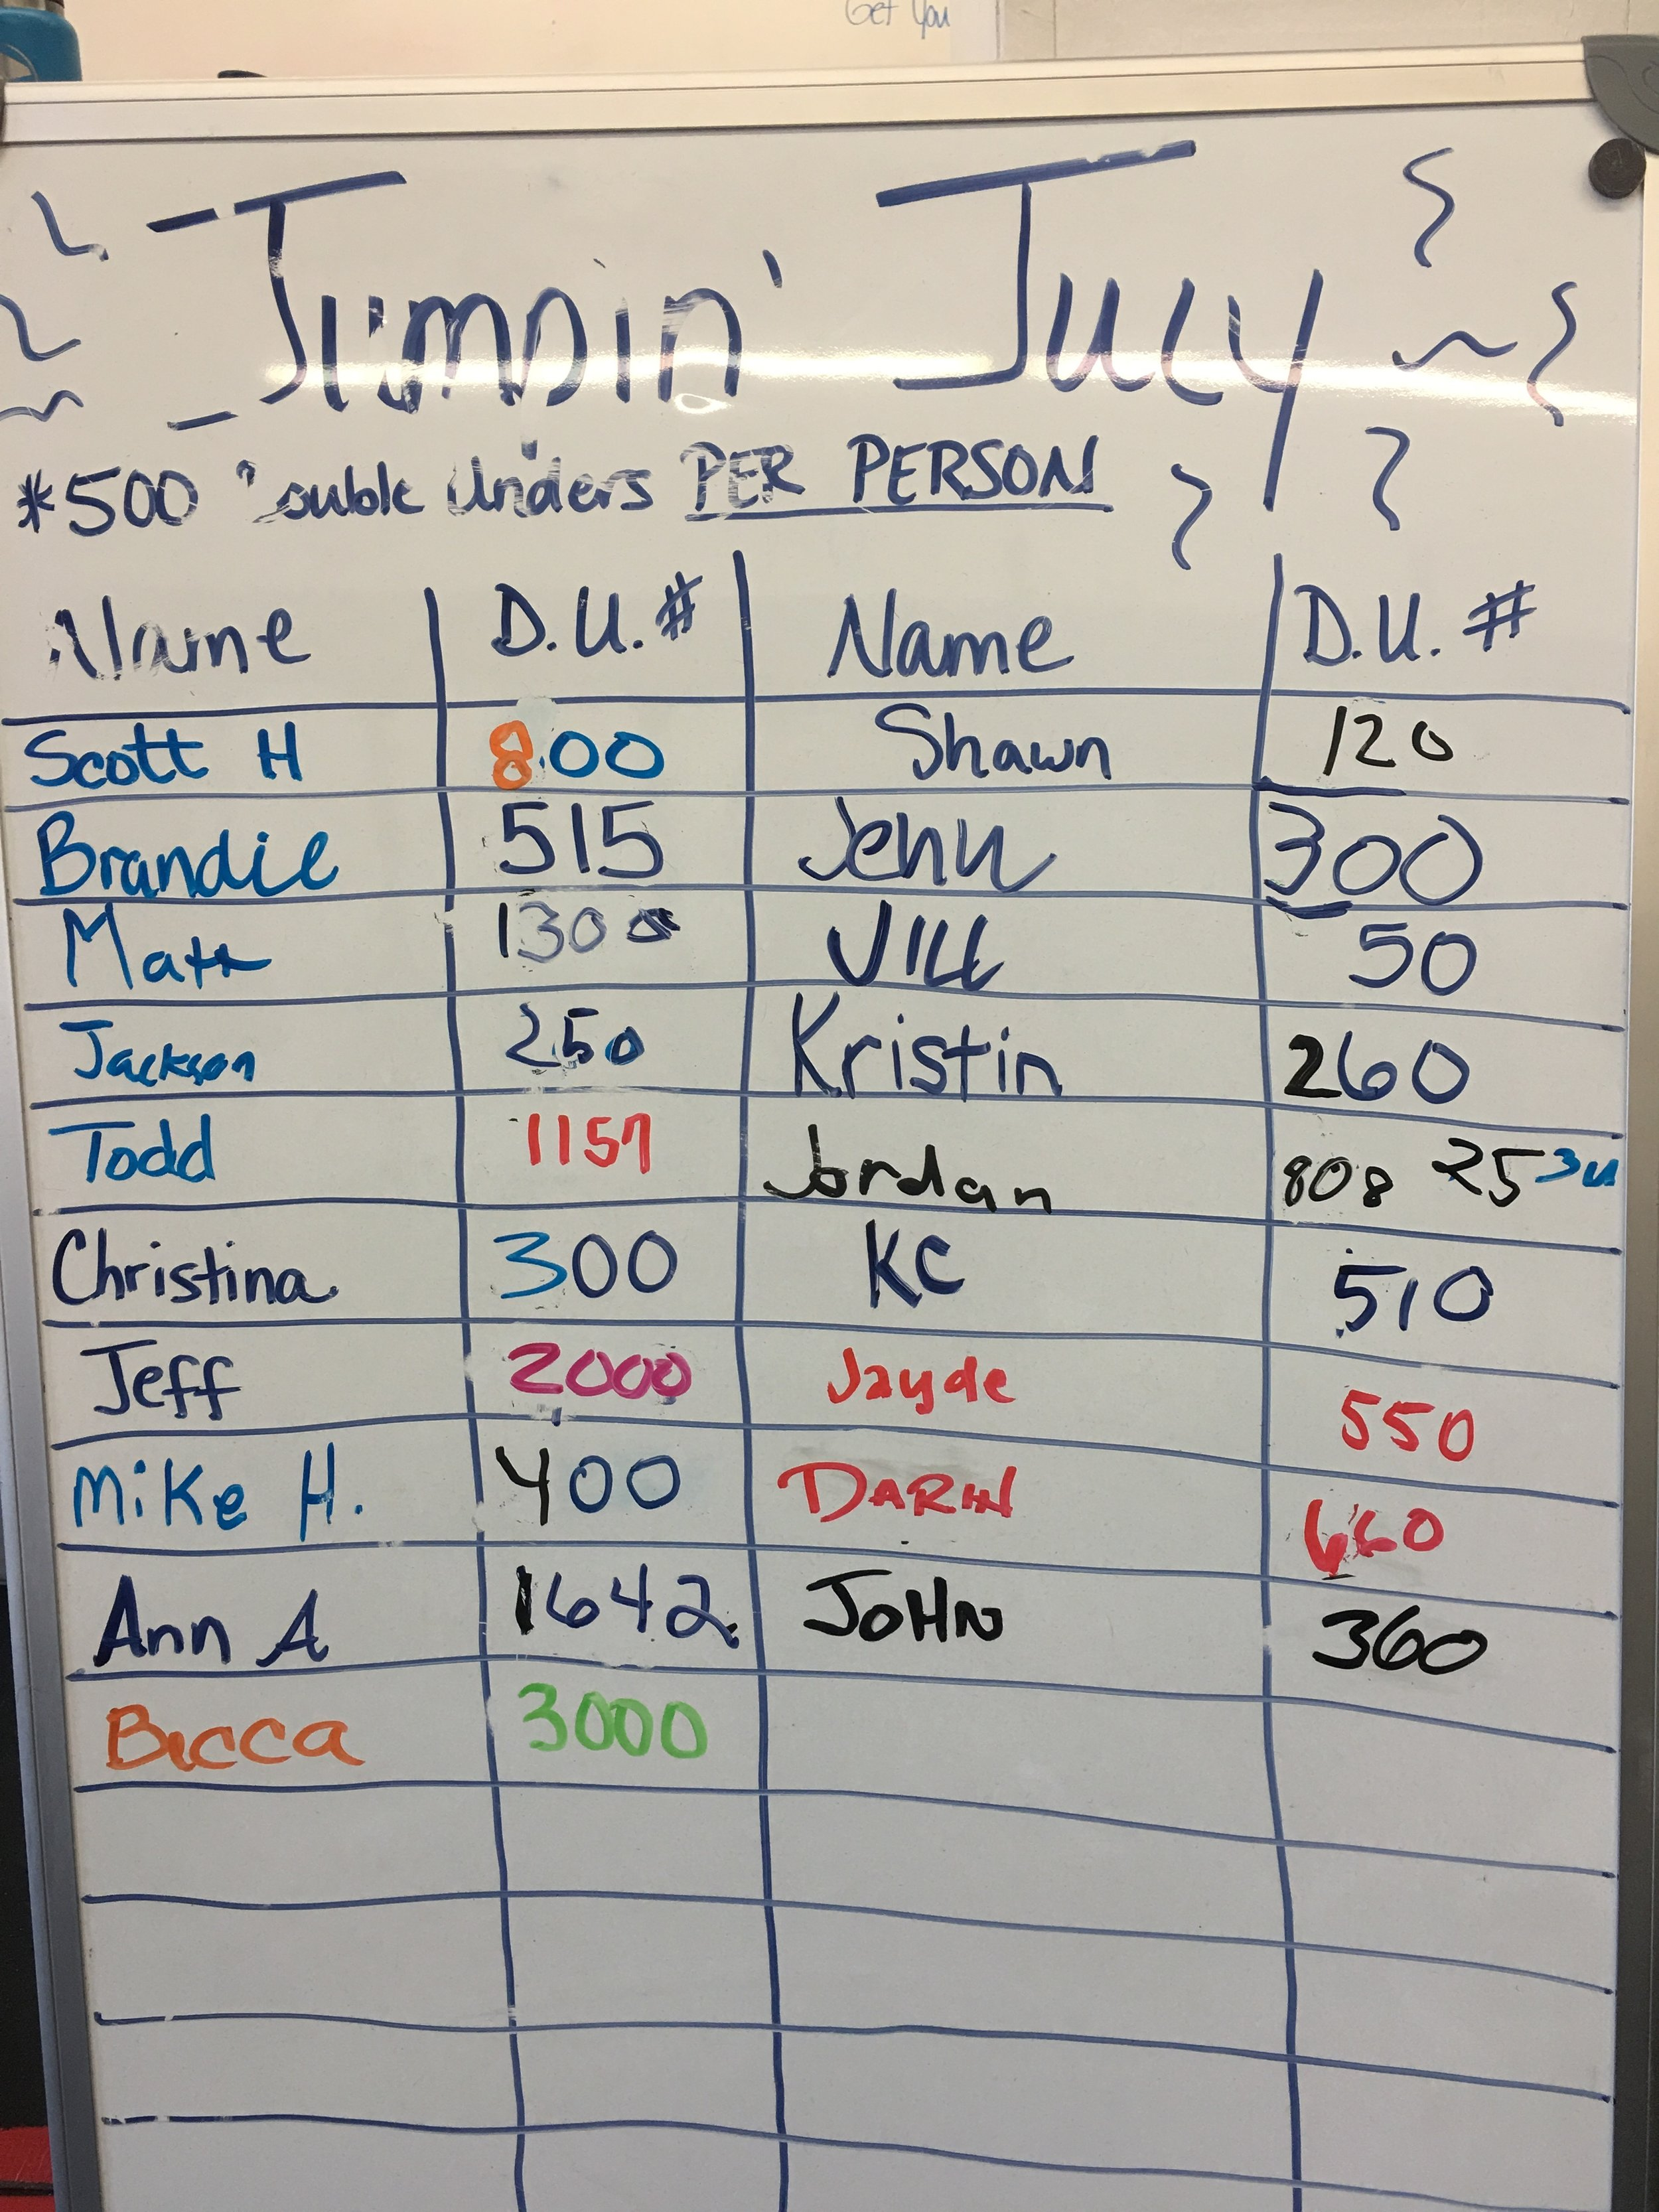 Becca wins the Jumpin' July challenge with 3,000 double unders! It was a close race between Jeff and Ann for second, but Jeff snagged the silver. Good job to all those that met or exceeded the 500 goal!